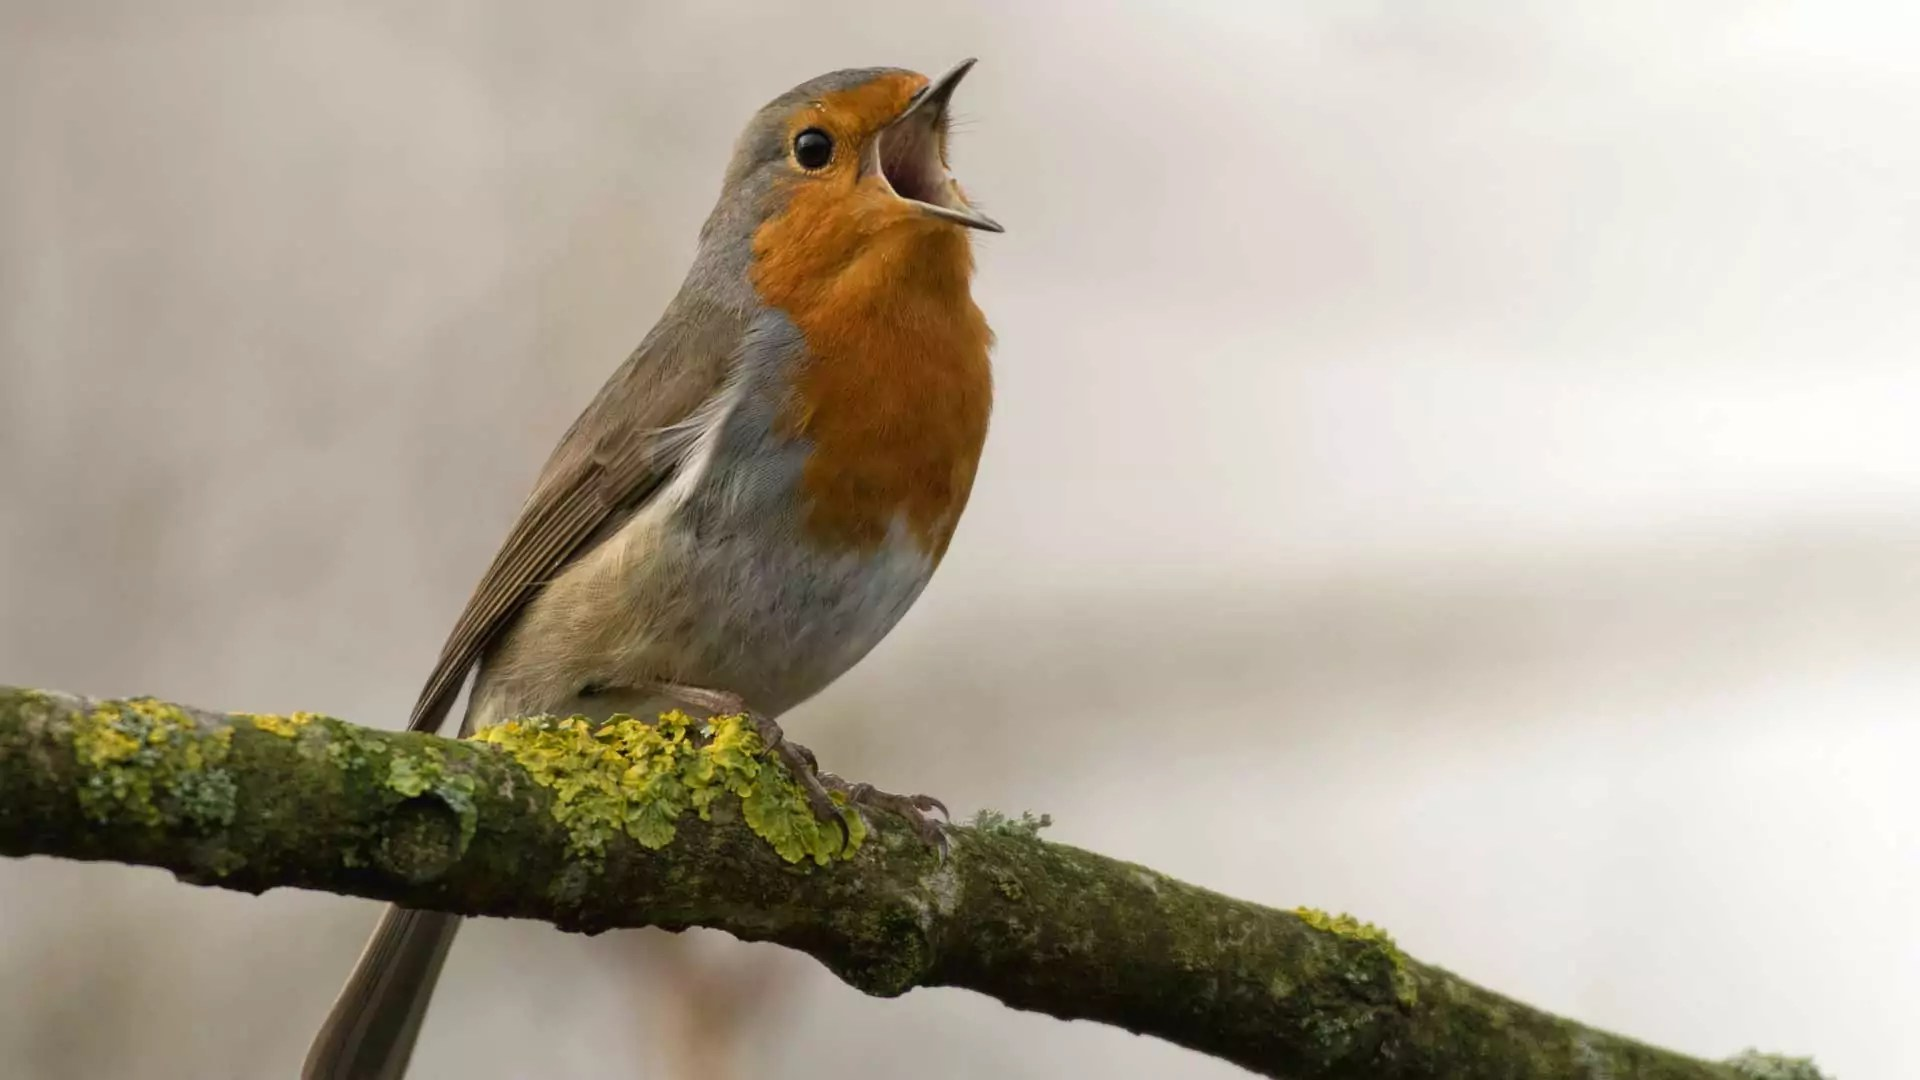 A small orange robin chirps on the branch of a tree.